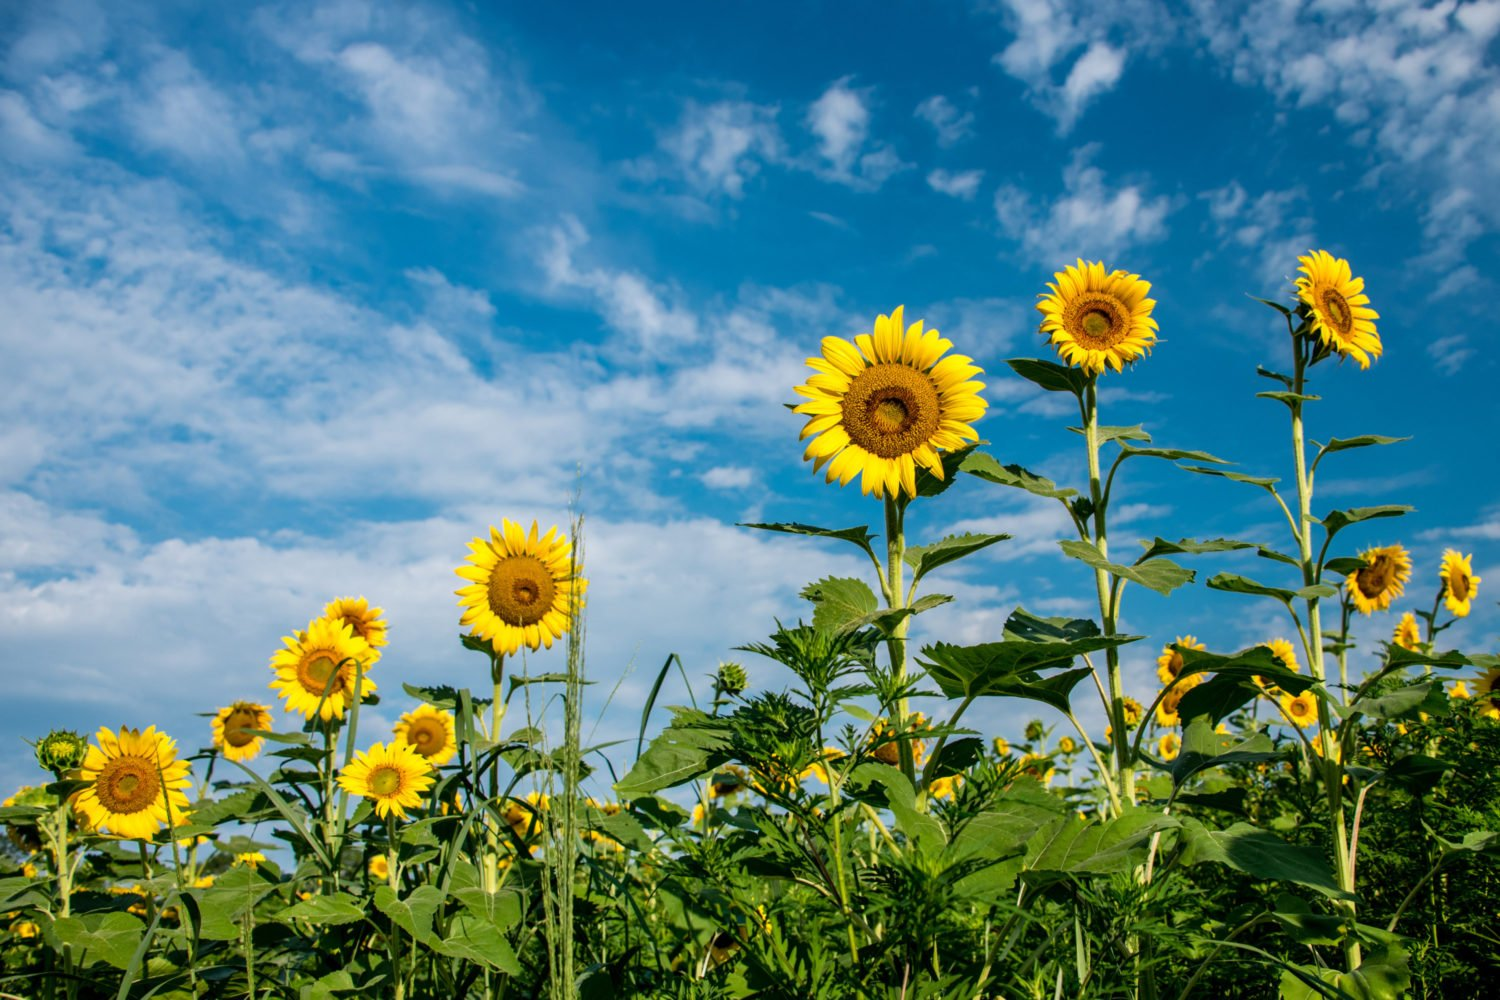 The sunflowers at Mckee-Beshers. Photo by Flickr user angela n.